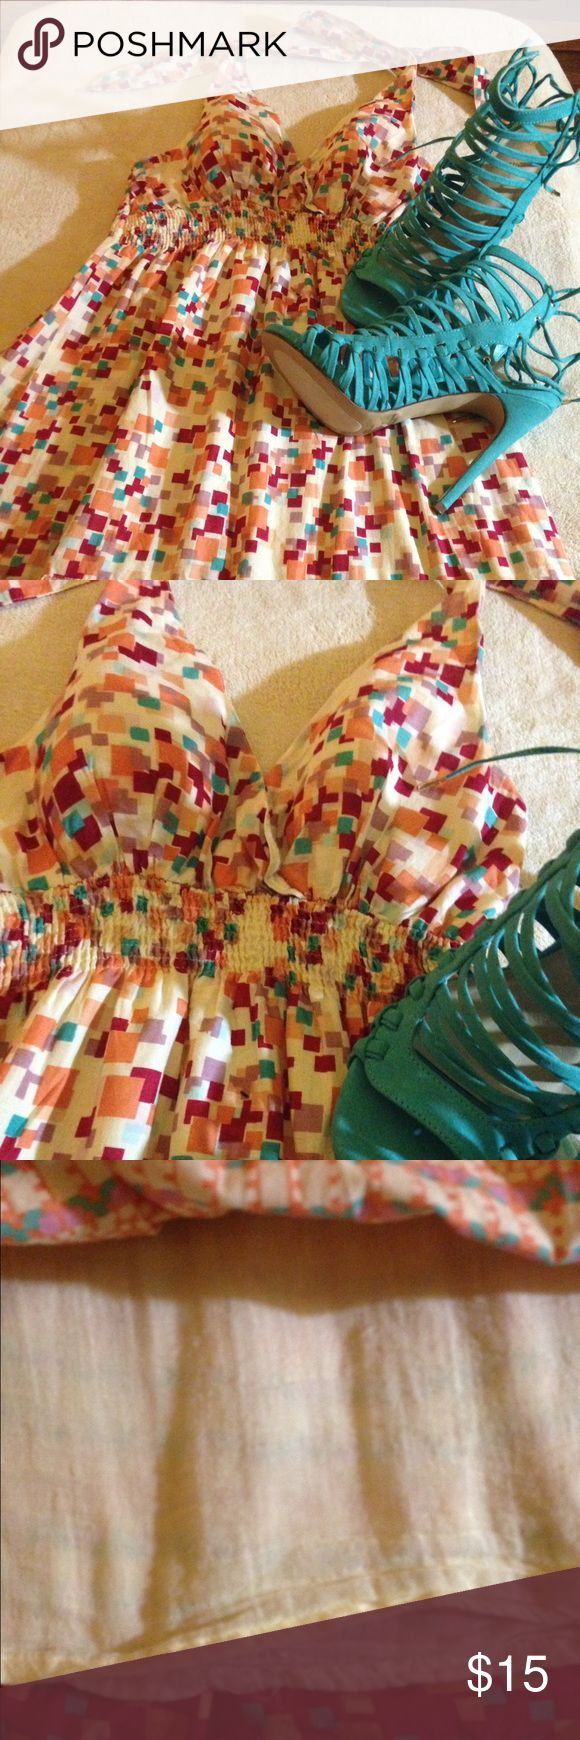 """Multi Colored Halter Dress It's hot somewhere! This colorful dress that ties around your neck is just right for a picnic, lunch, the beach , or your determination. The possibilities are endless. It has built in bra pads and a lining as well. 100% Cotton and length is 31"""" Up under the bodice it has elastic. 👗 Dresses"""